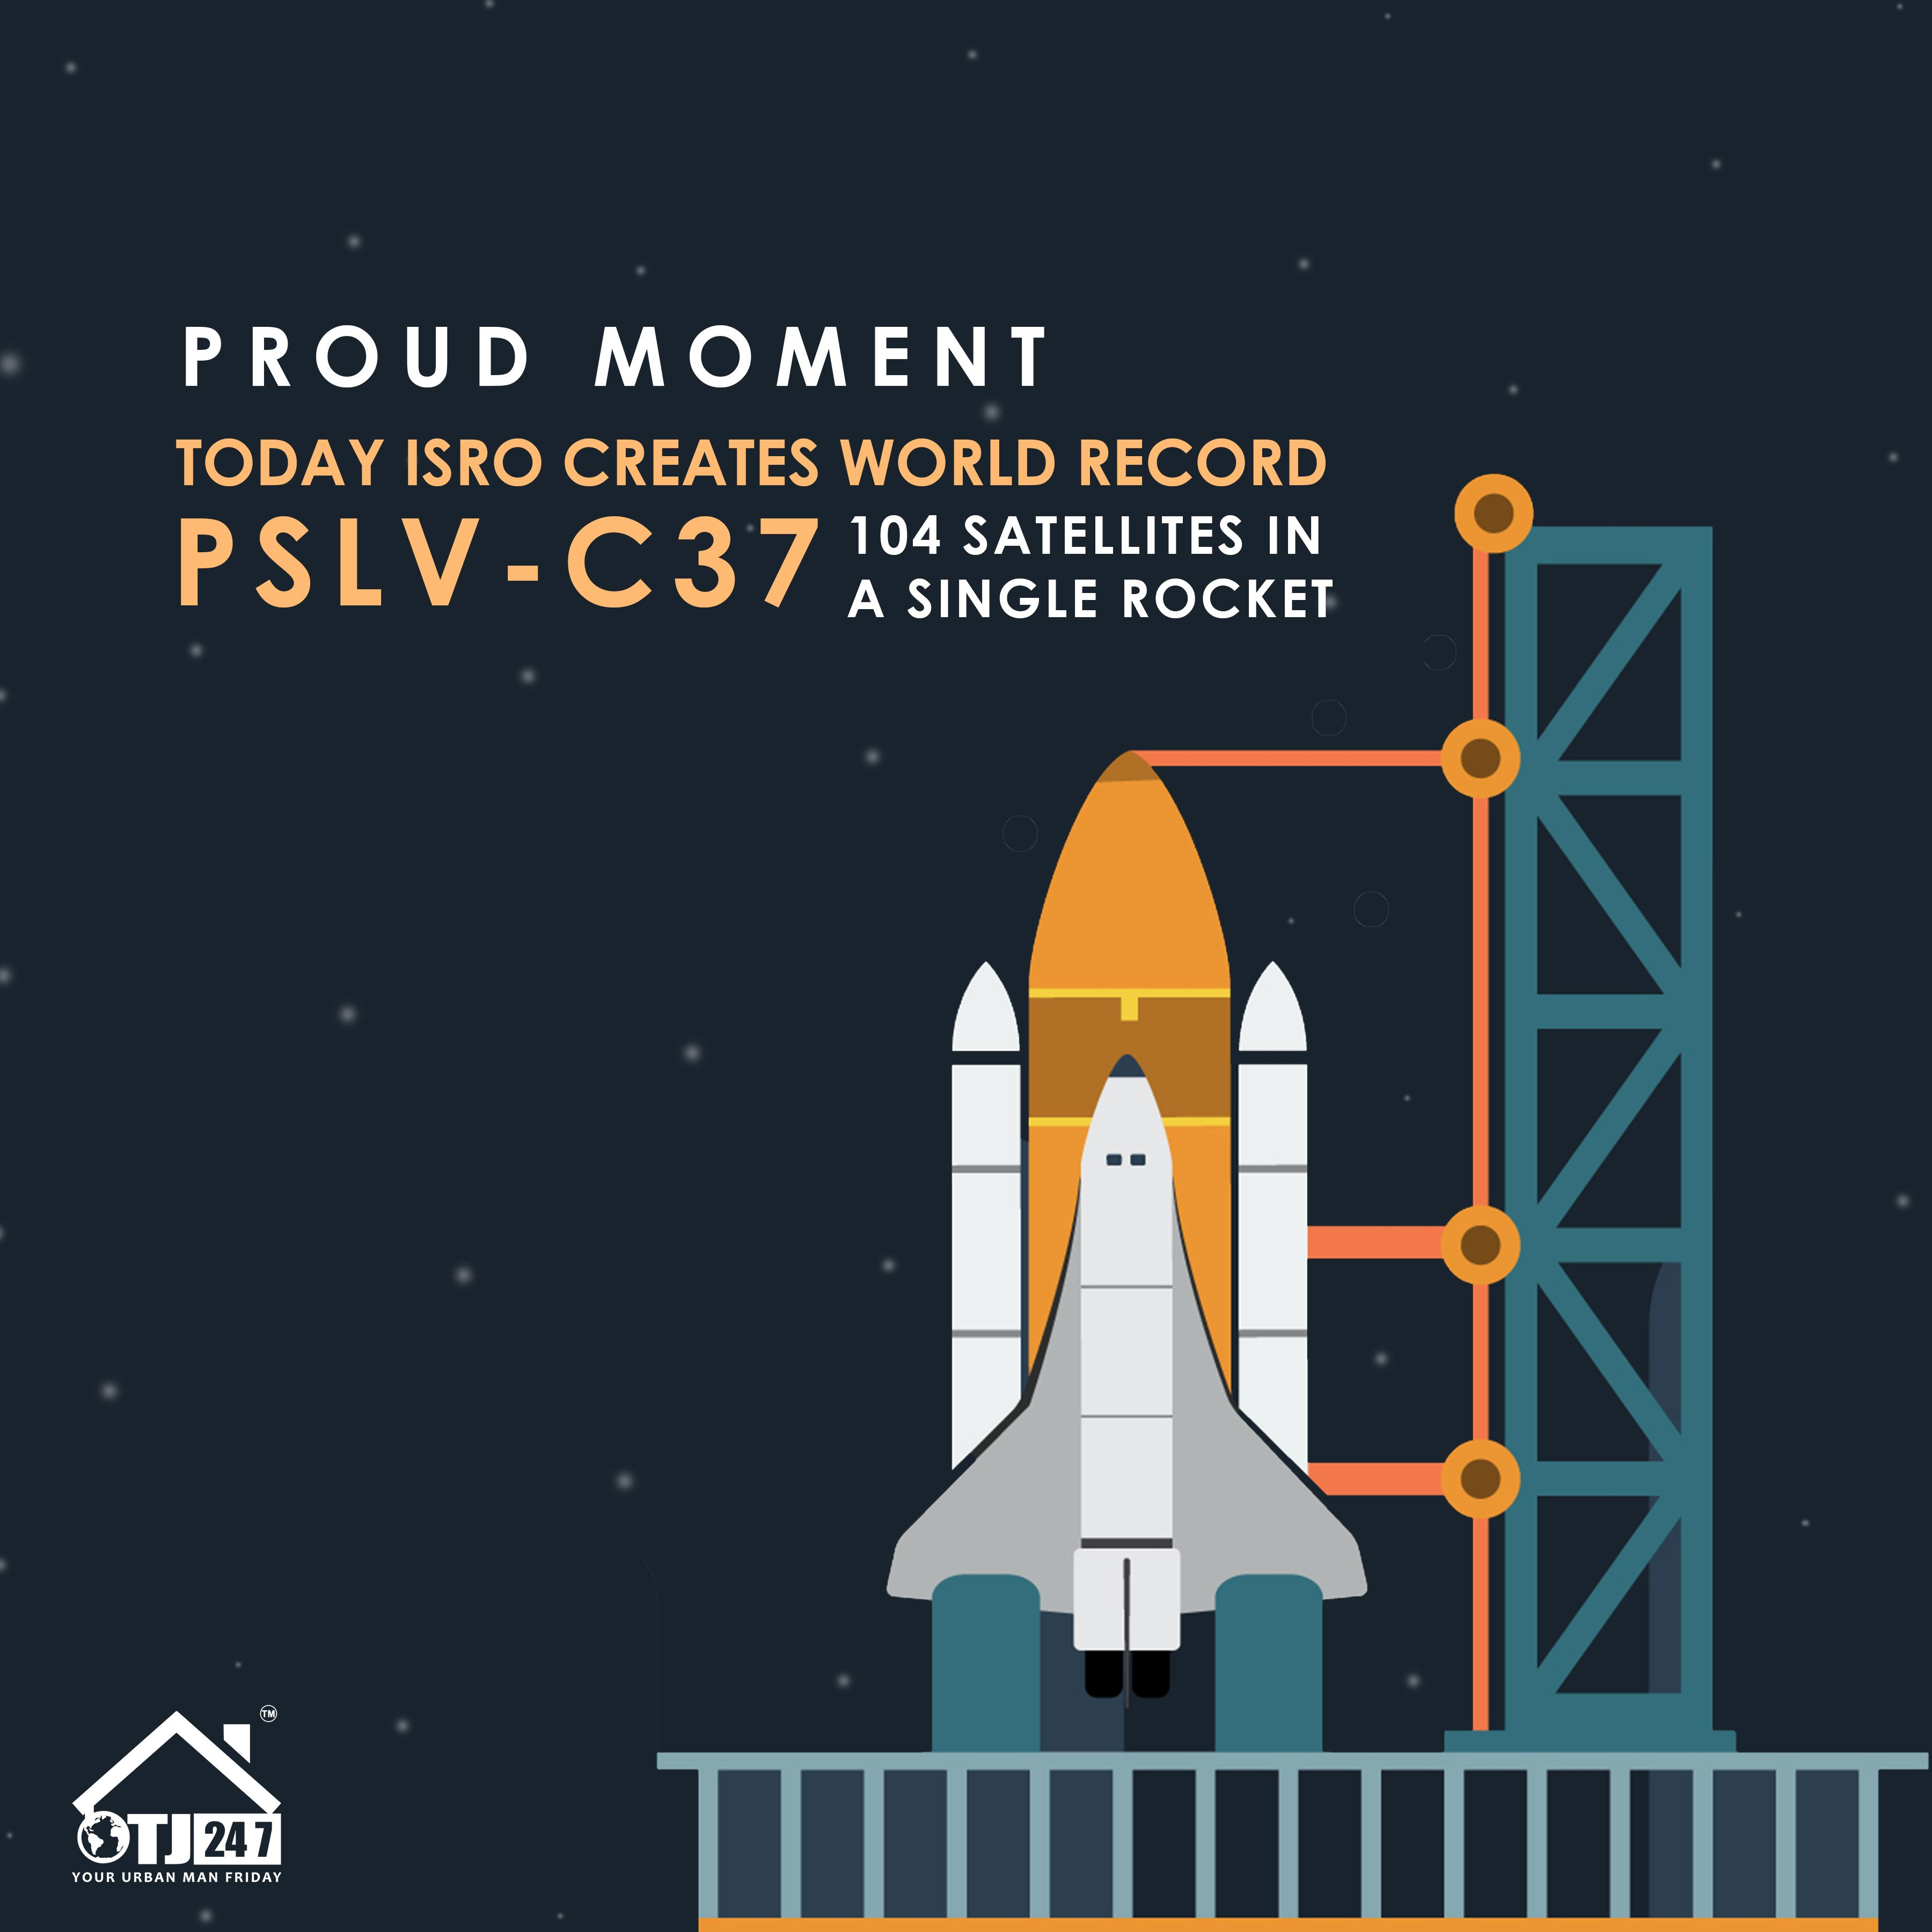 Isro Creates World Record Launches 104 Satellites In One Go Aboard The Pslv C37 Pslvc37 Isro World Records Satellites In This Moment